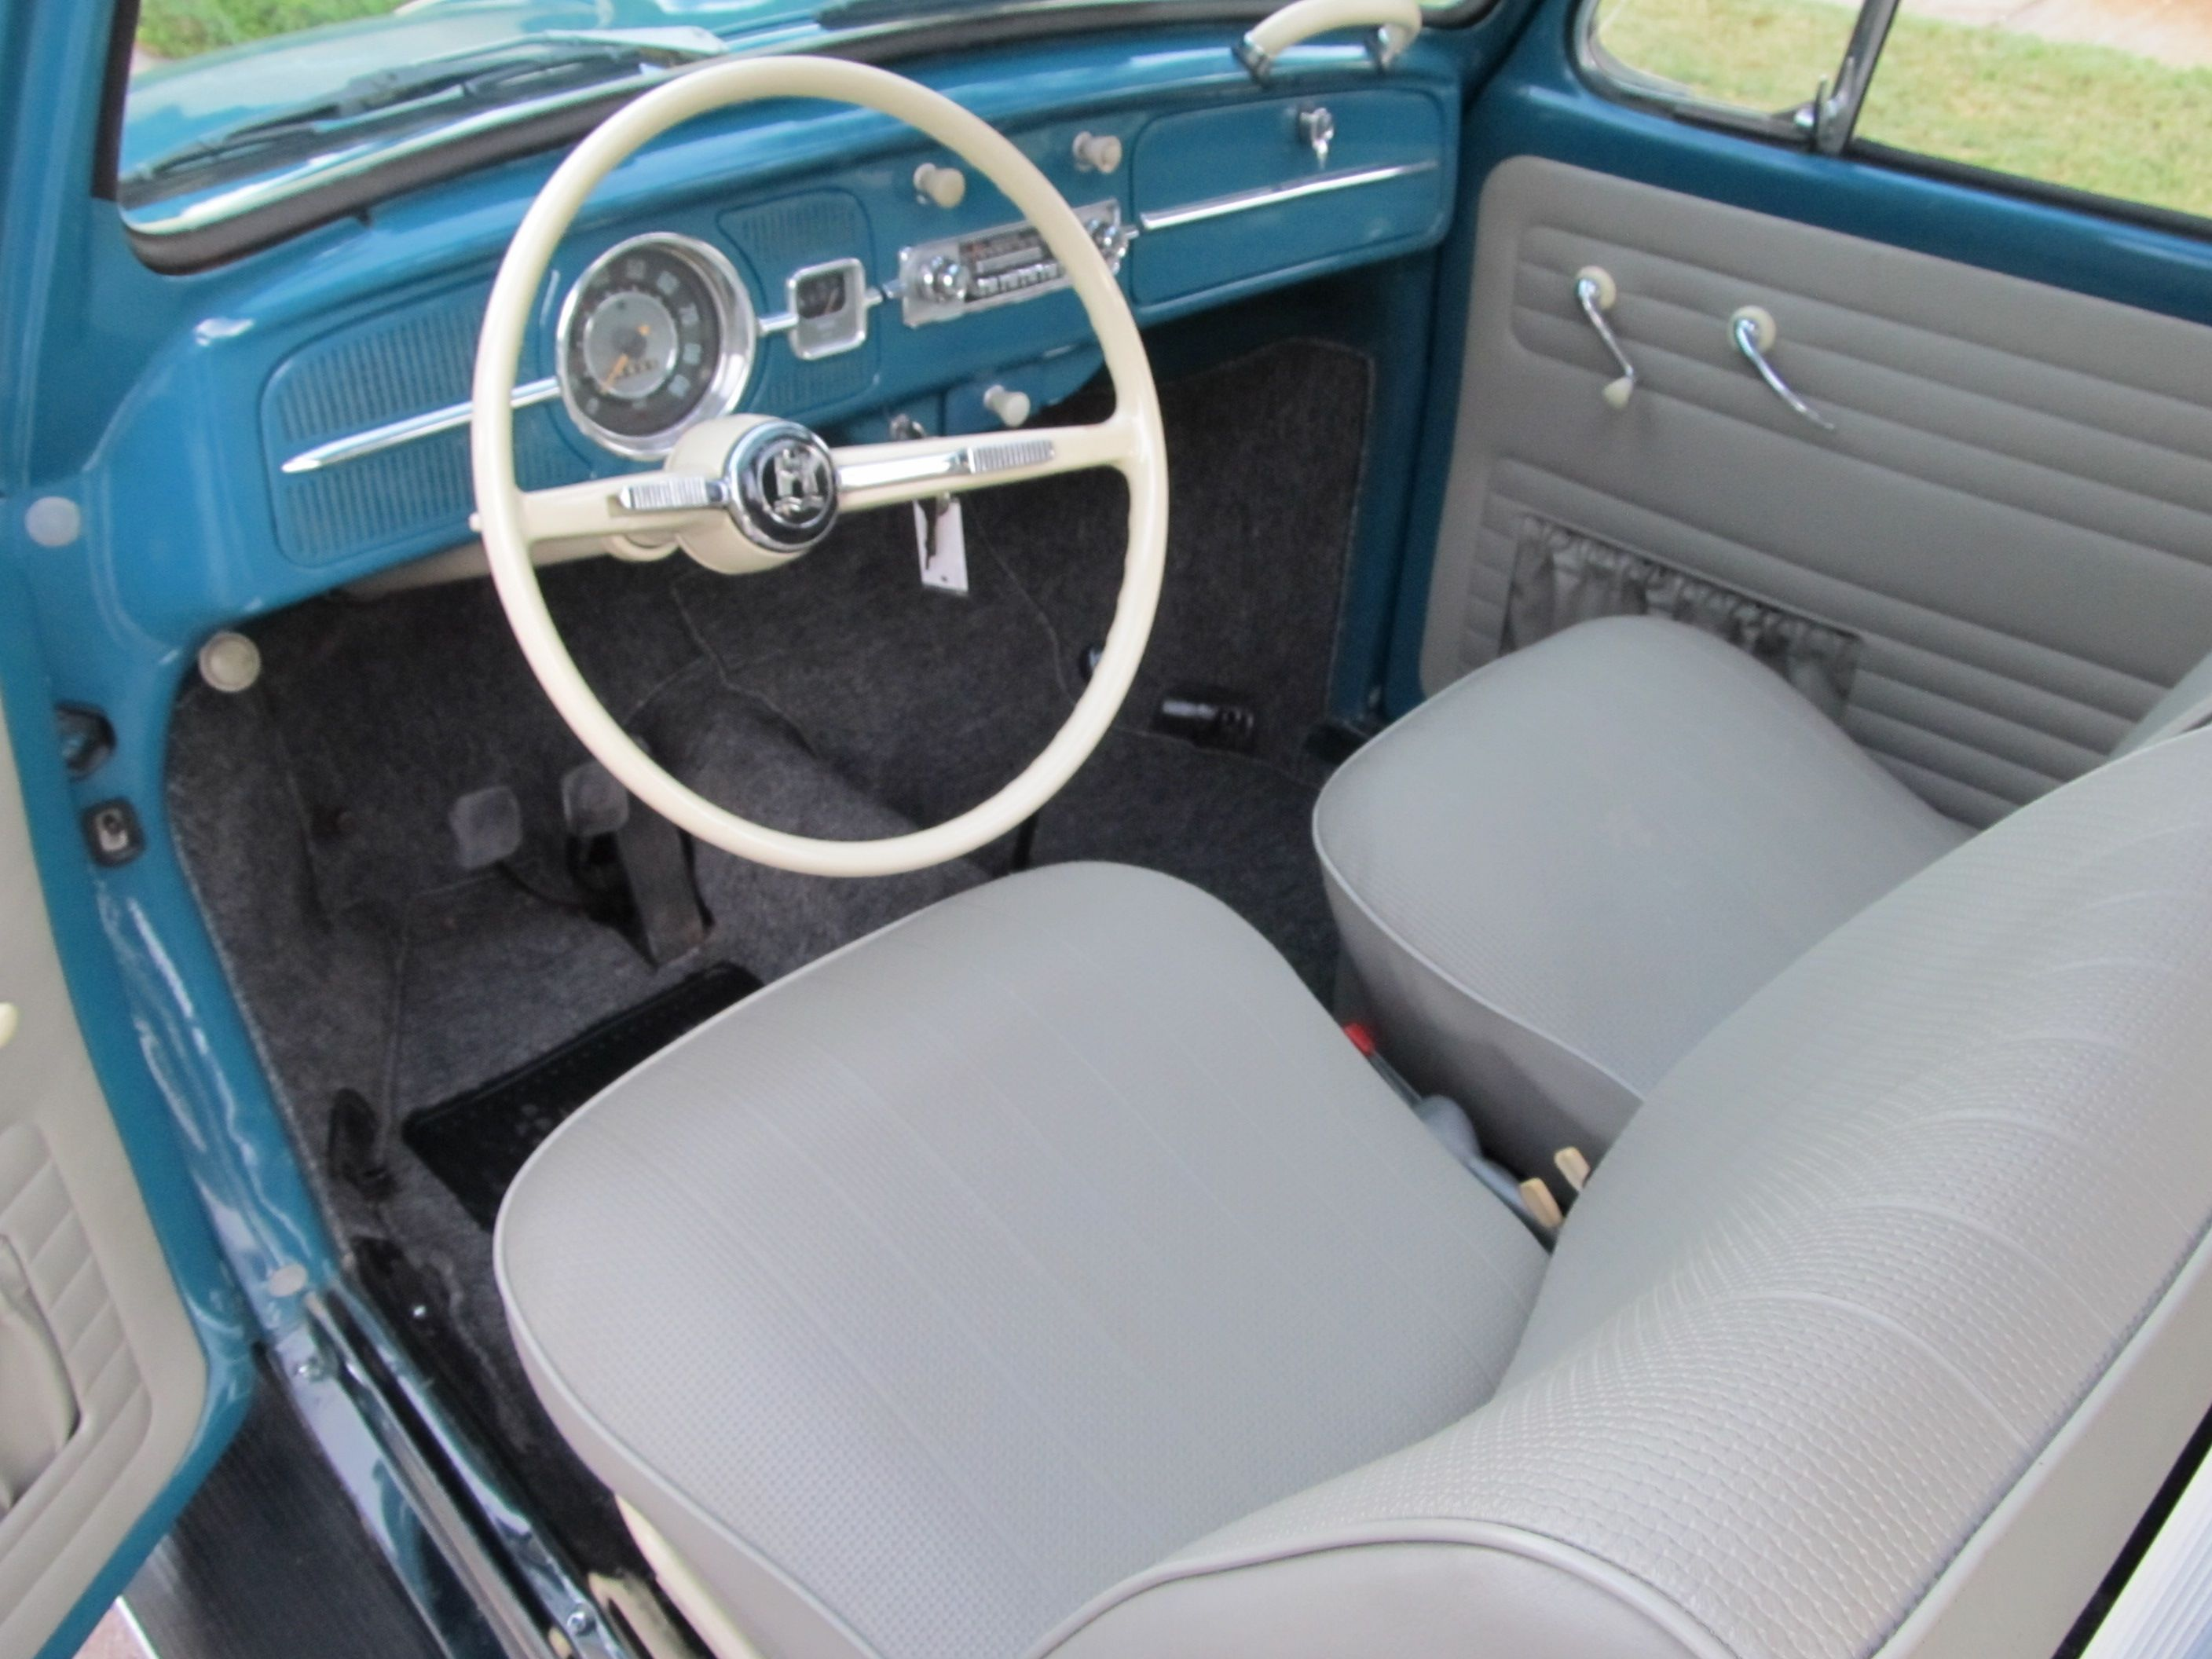 1965 Volkswagen Beetle A Nicely Restored Sunroof Bug Finished In Sea Blue With The New Bone Interior Incl Vw Beetle Classic Vw Super Beetle Vw Bug Interior